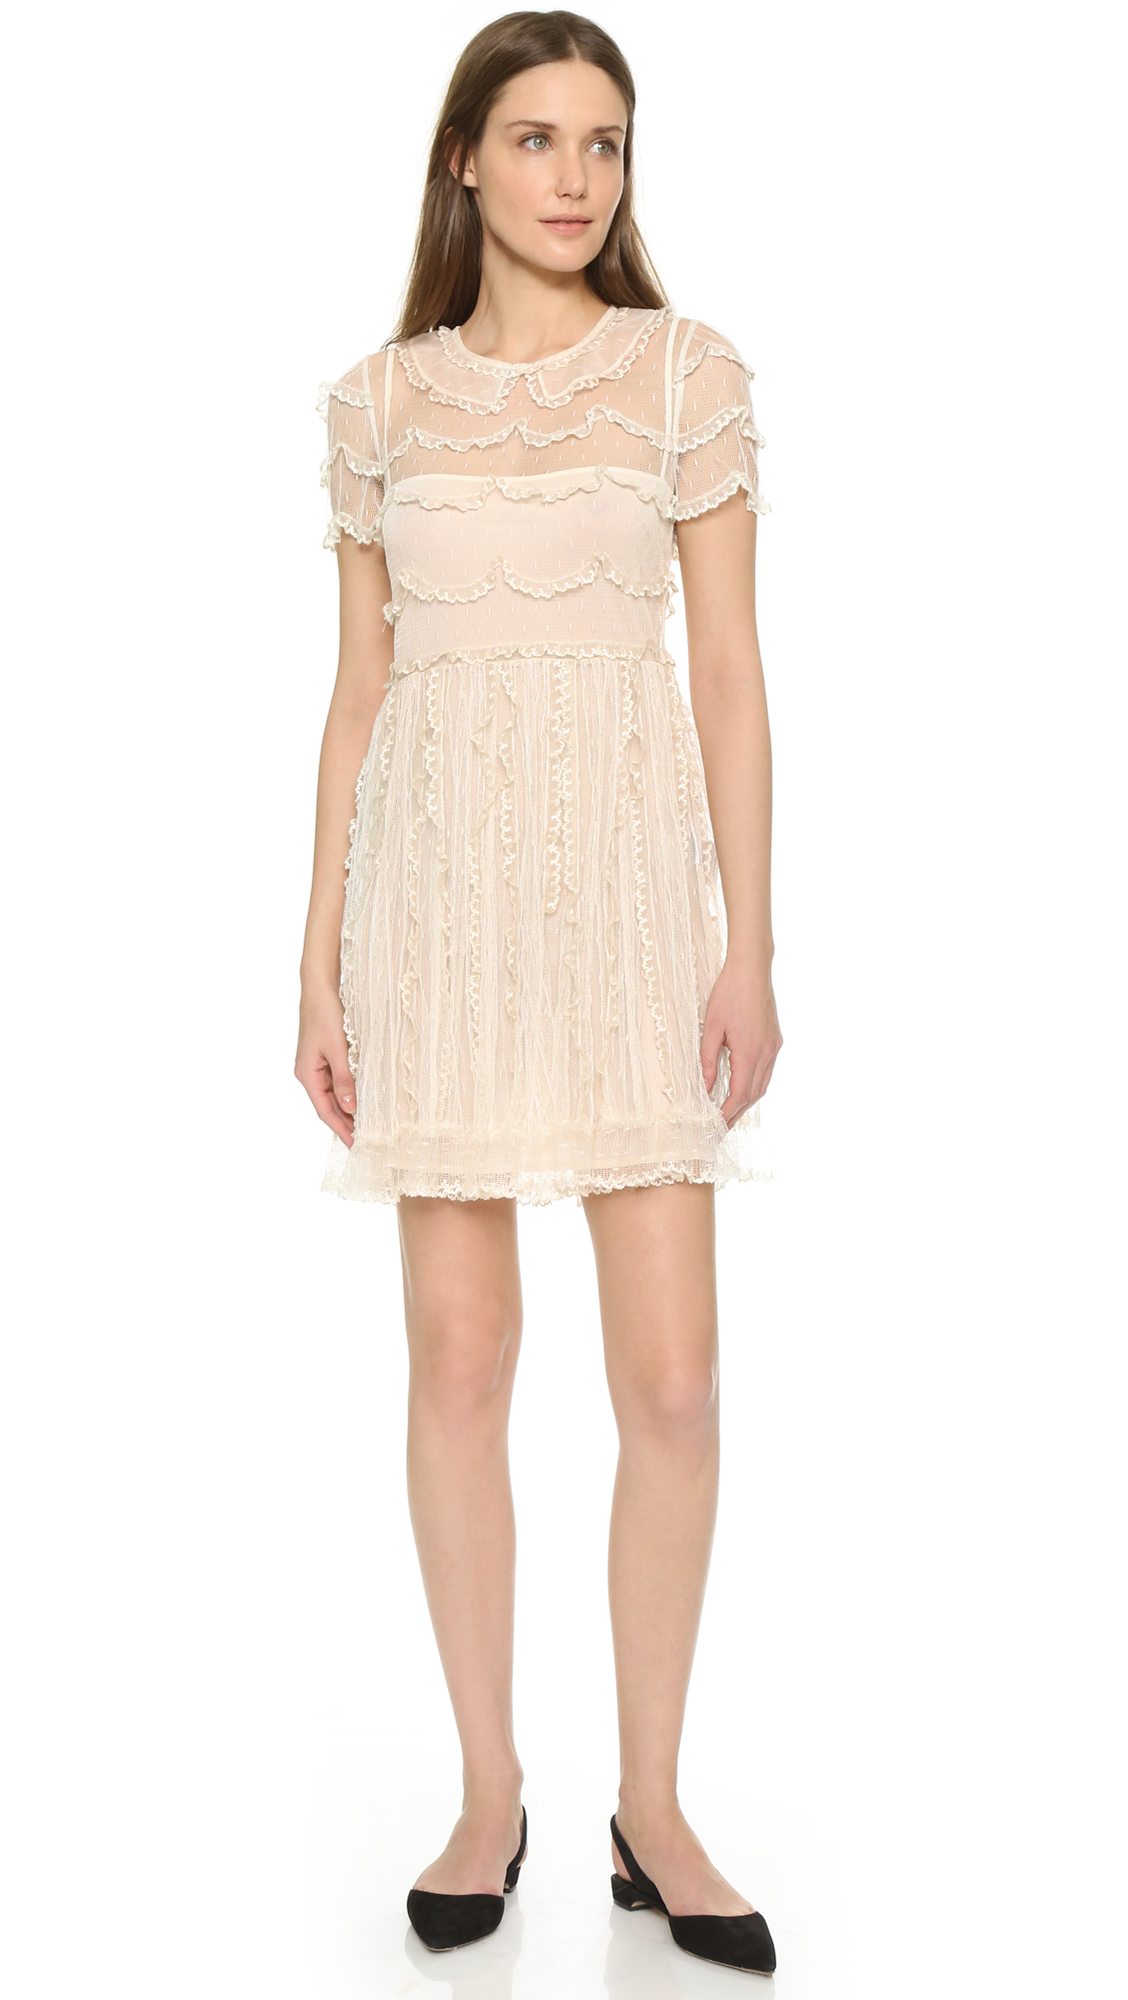 Red Valentino Spring 2016: Red Valentino Lace Dress In Pink